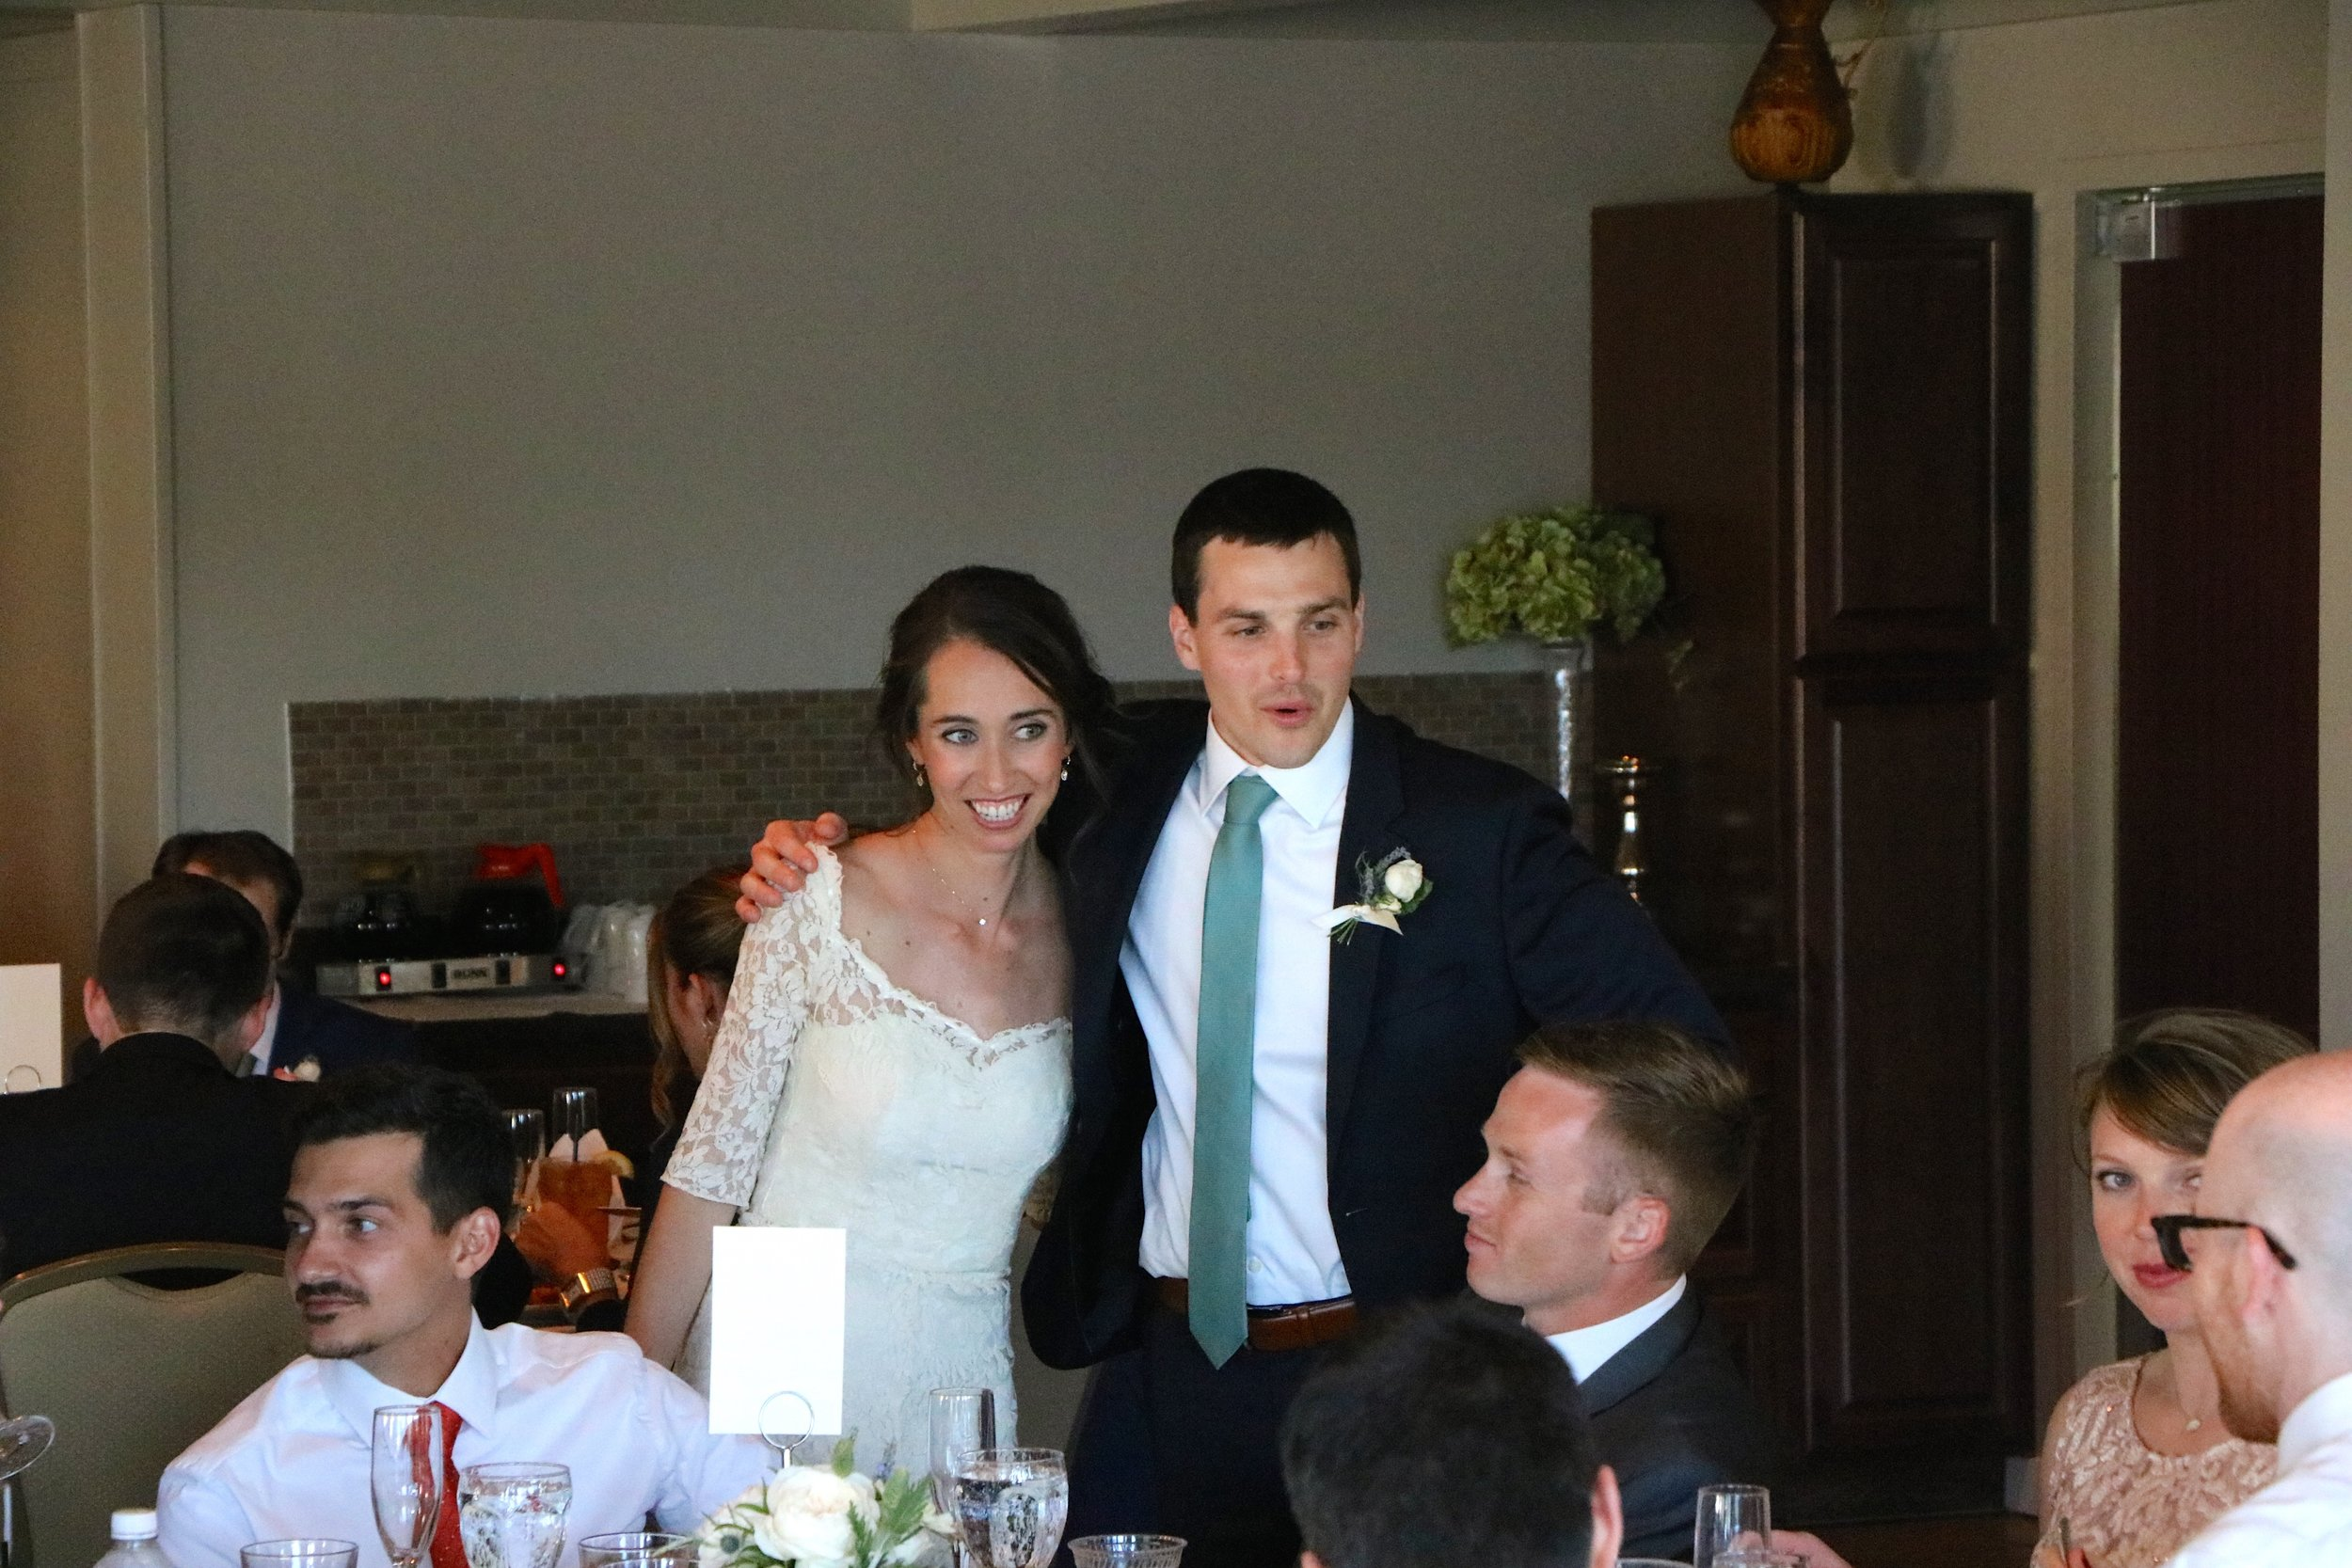 Kristin & Adam (seated) were married in March 2015, which is how I met Lauren & Brock- thanks guys!